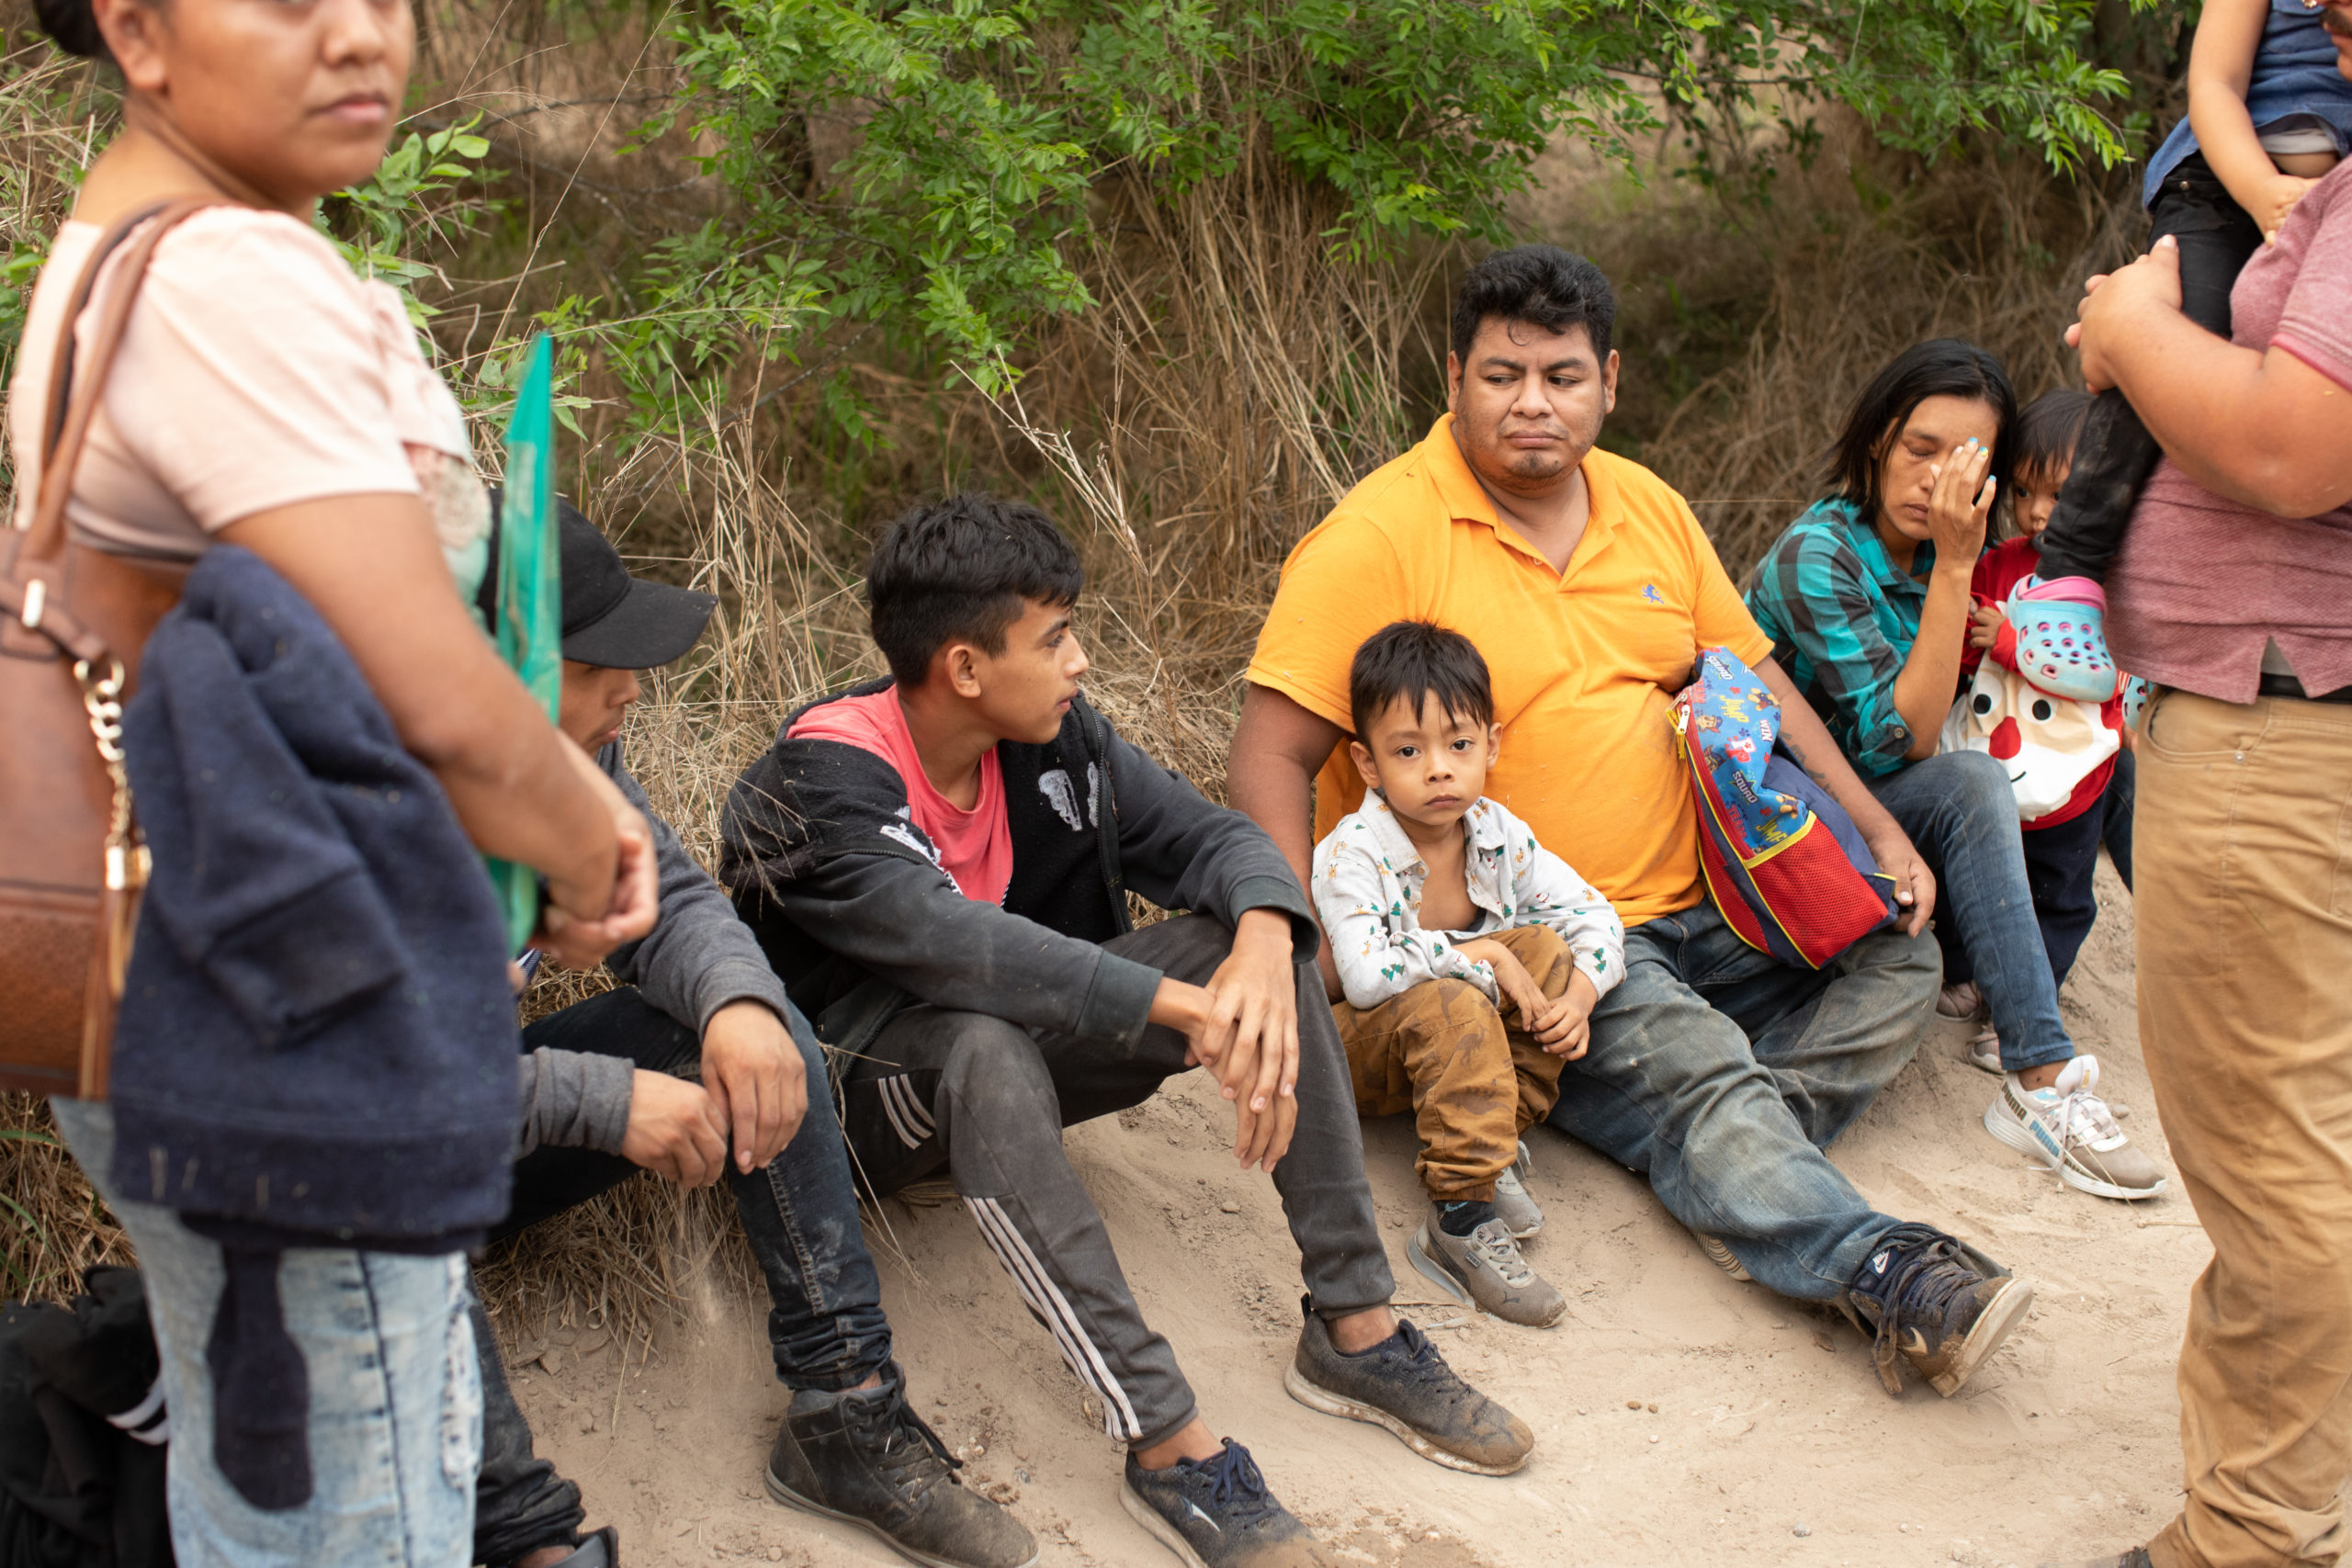 Officials with the Hidalgo County Constable's office gathers biometric data from illegal immigrants shortly after they were smuggled into the U.S. in Rincon Village near McAllen, Texas, on March 24, 2021. (Kaylee Greenlee. - Daily Caller News Foundation)